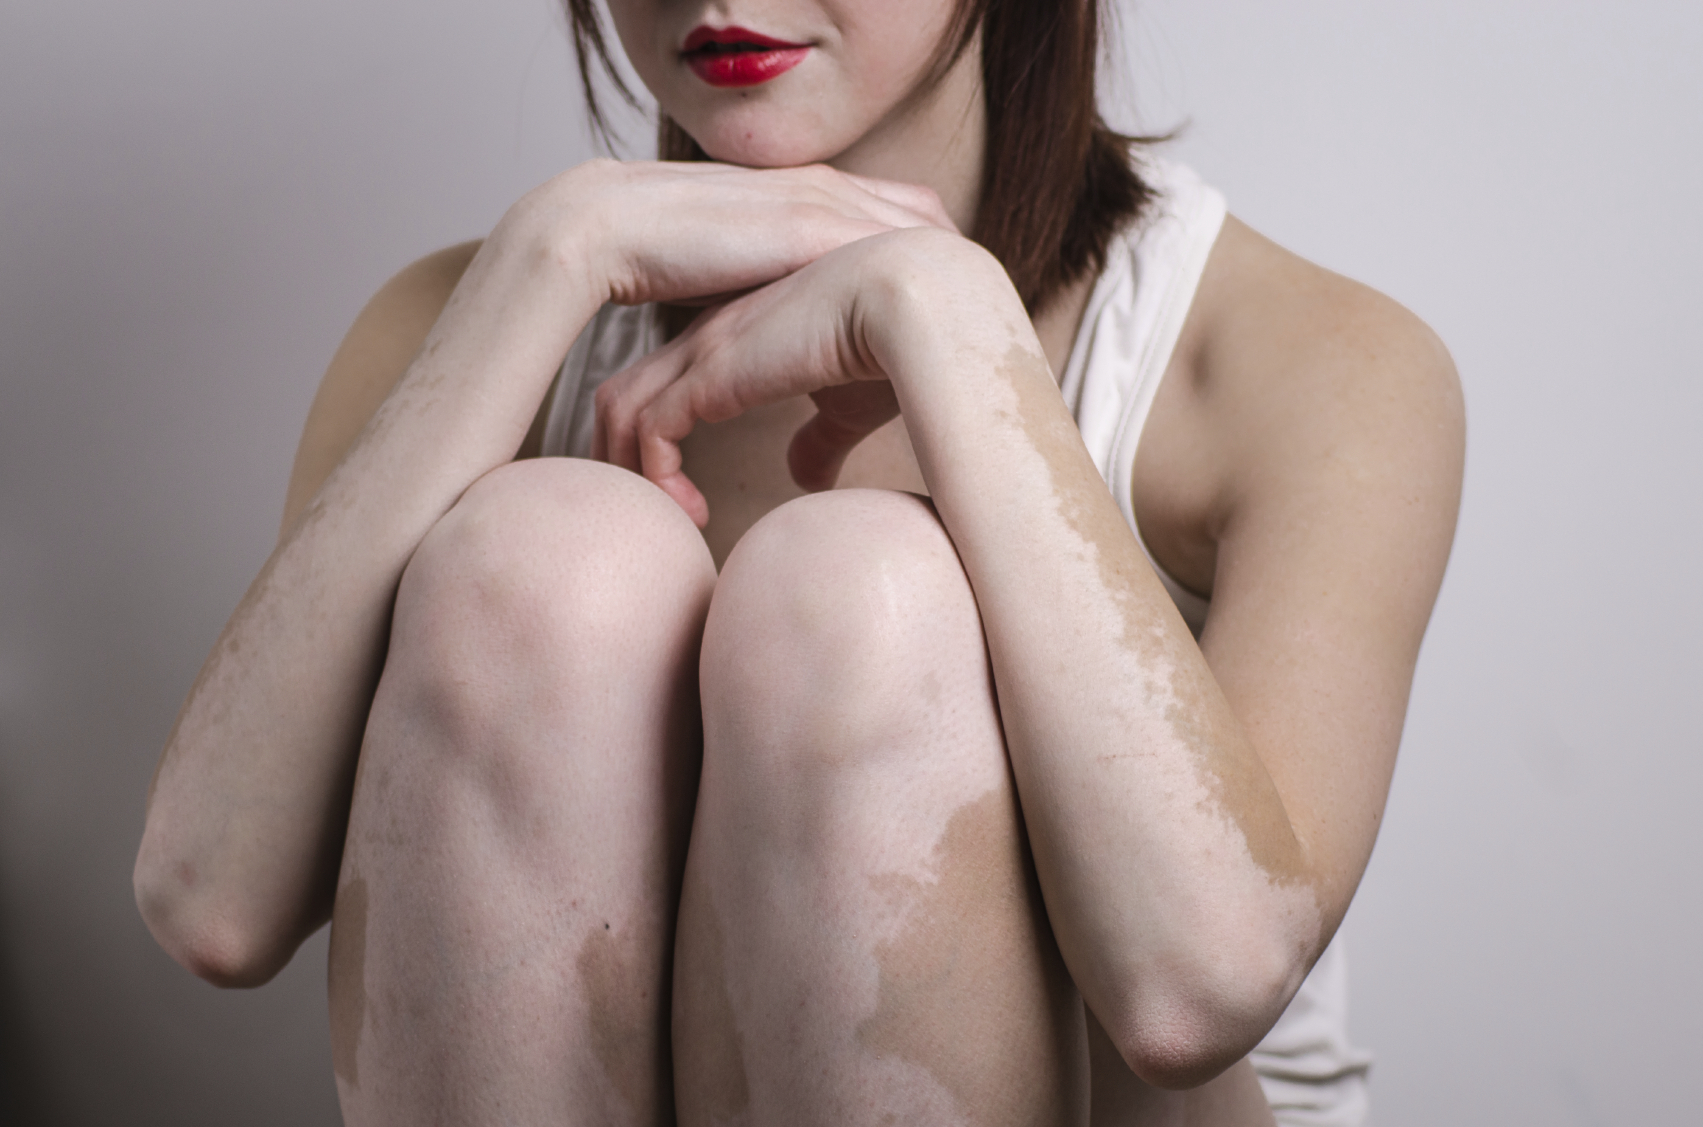 Get Stem Cell Therapy For Vitiligo In India With Tour2india4health Tour2india4health Blog